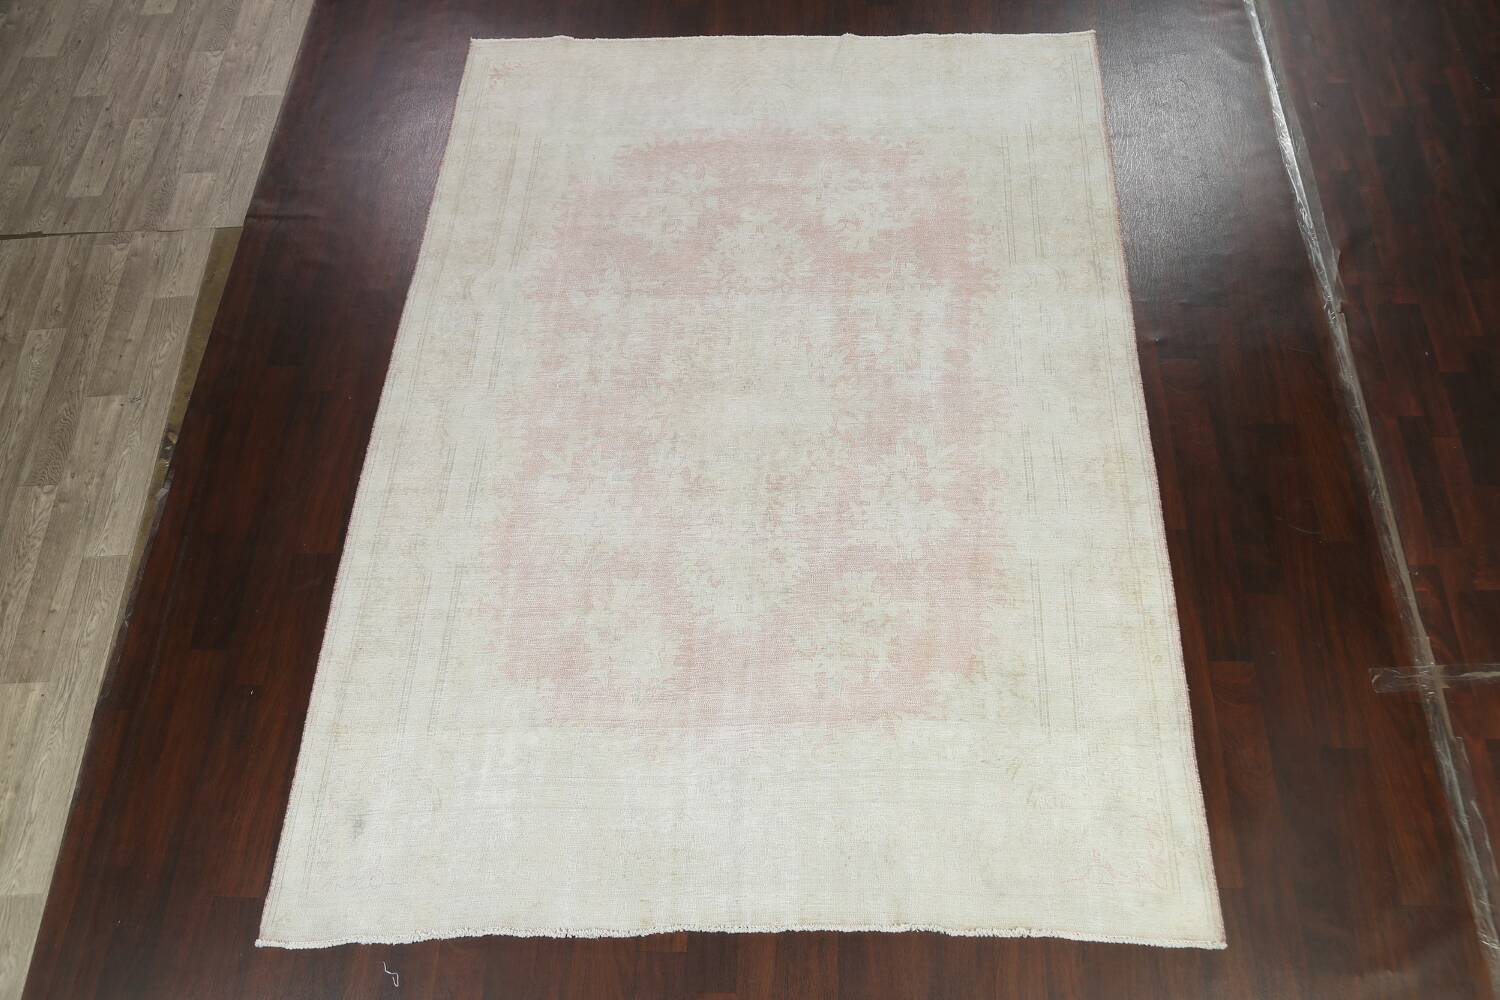 Antique Muted Distressed Kerman Persian Area Rug 8x11 image 2